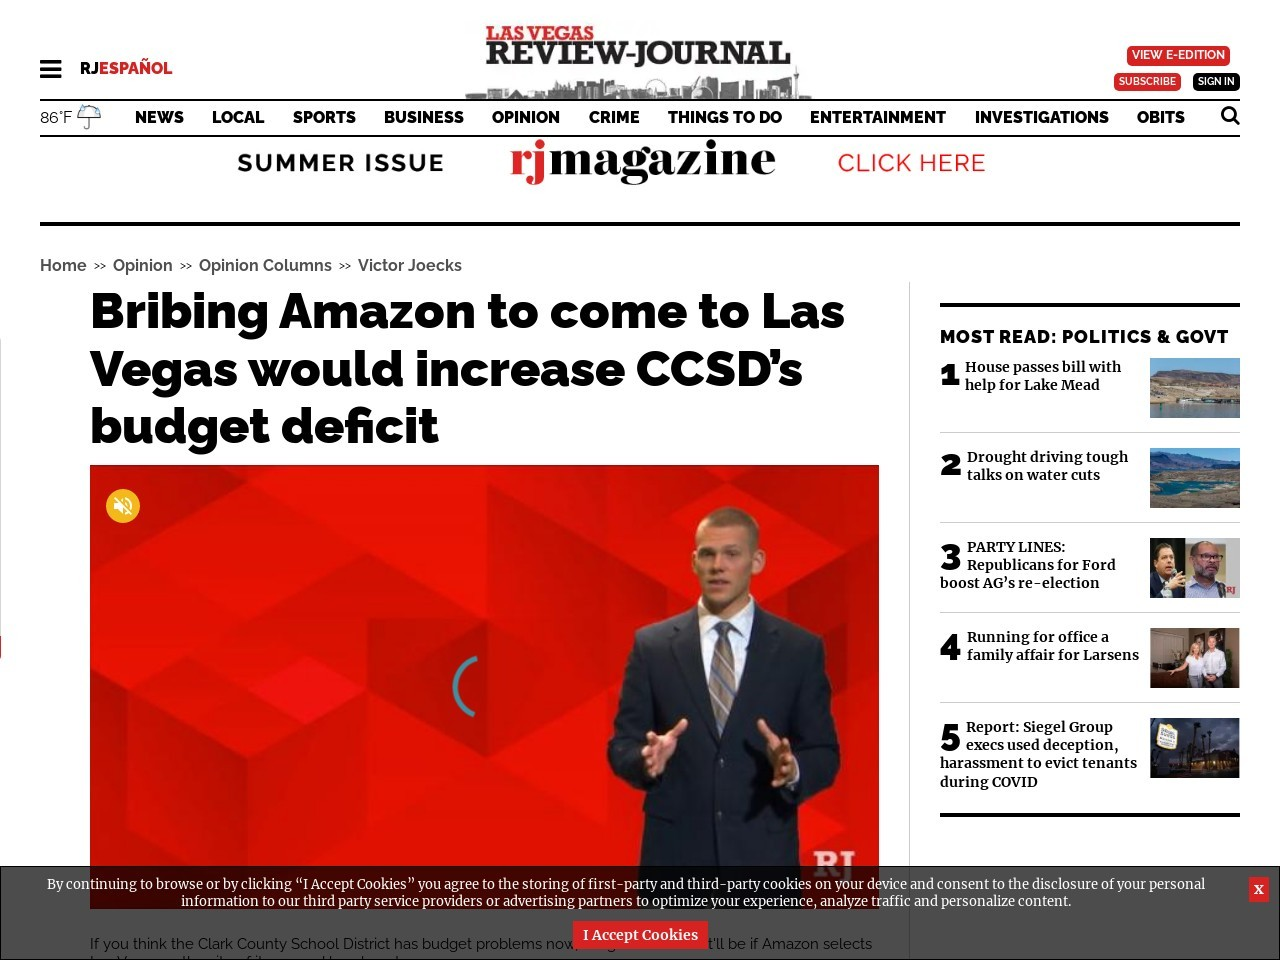 Bribing Amazon to come to Las Vegas would increase CCSD's budget deficit